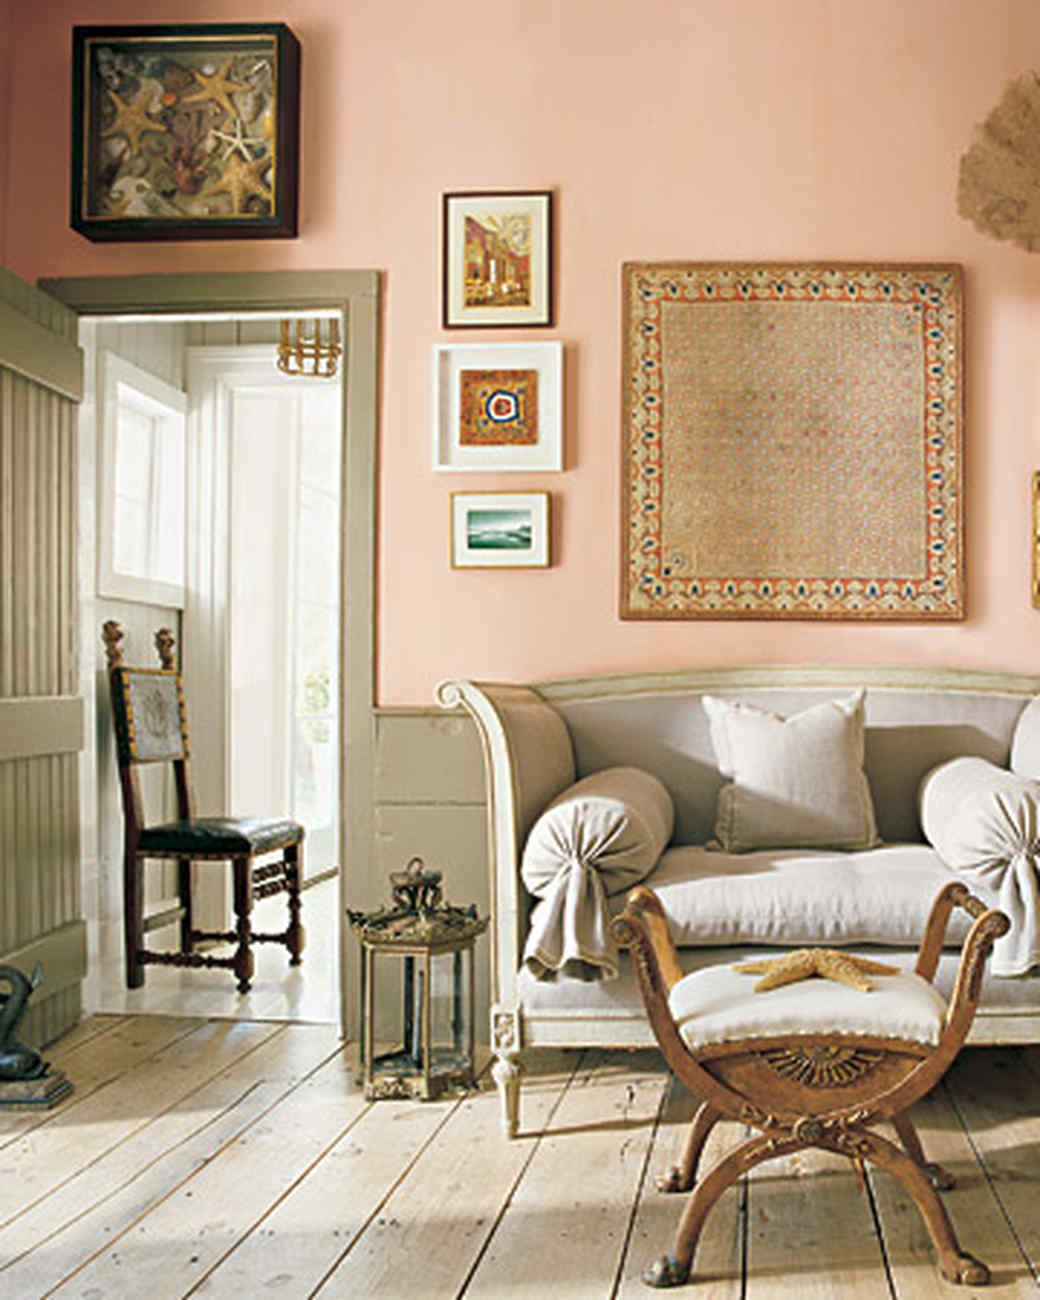 Bedroom Paint Ideas Photos paint palettes we love | martha stewart